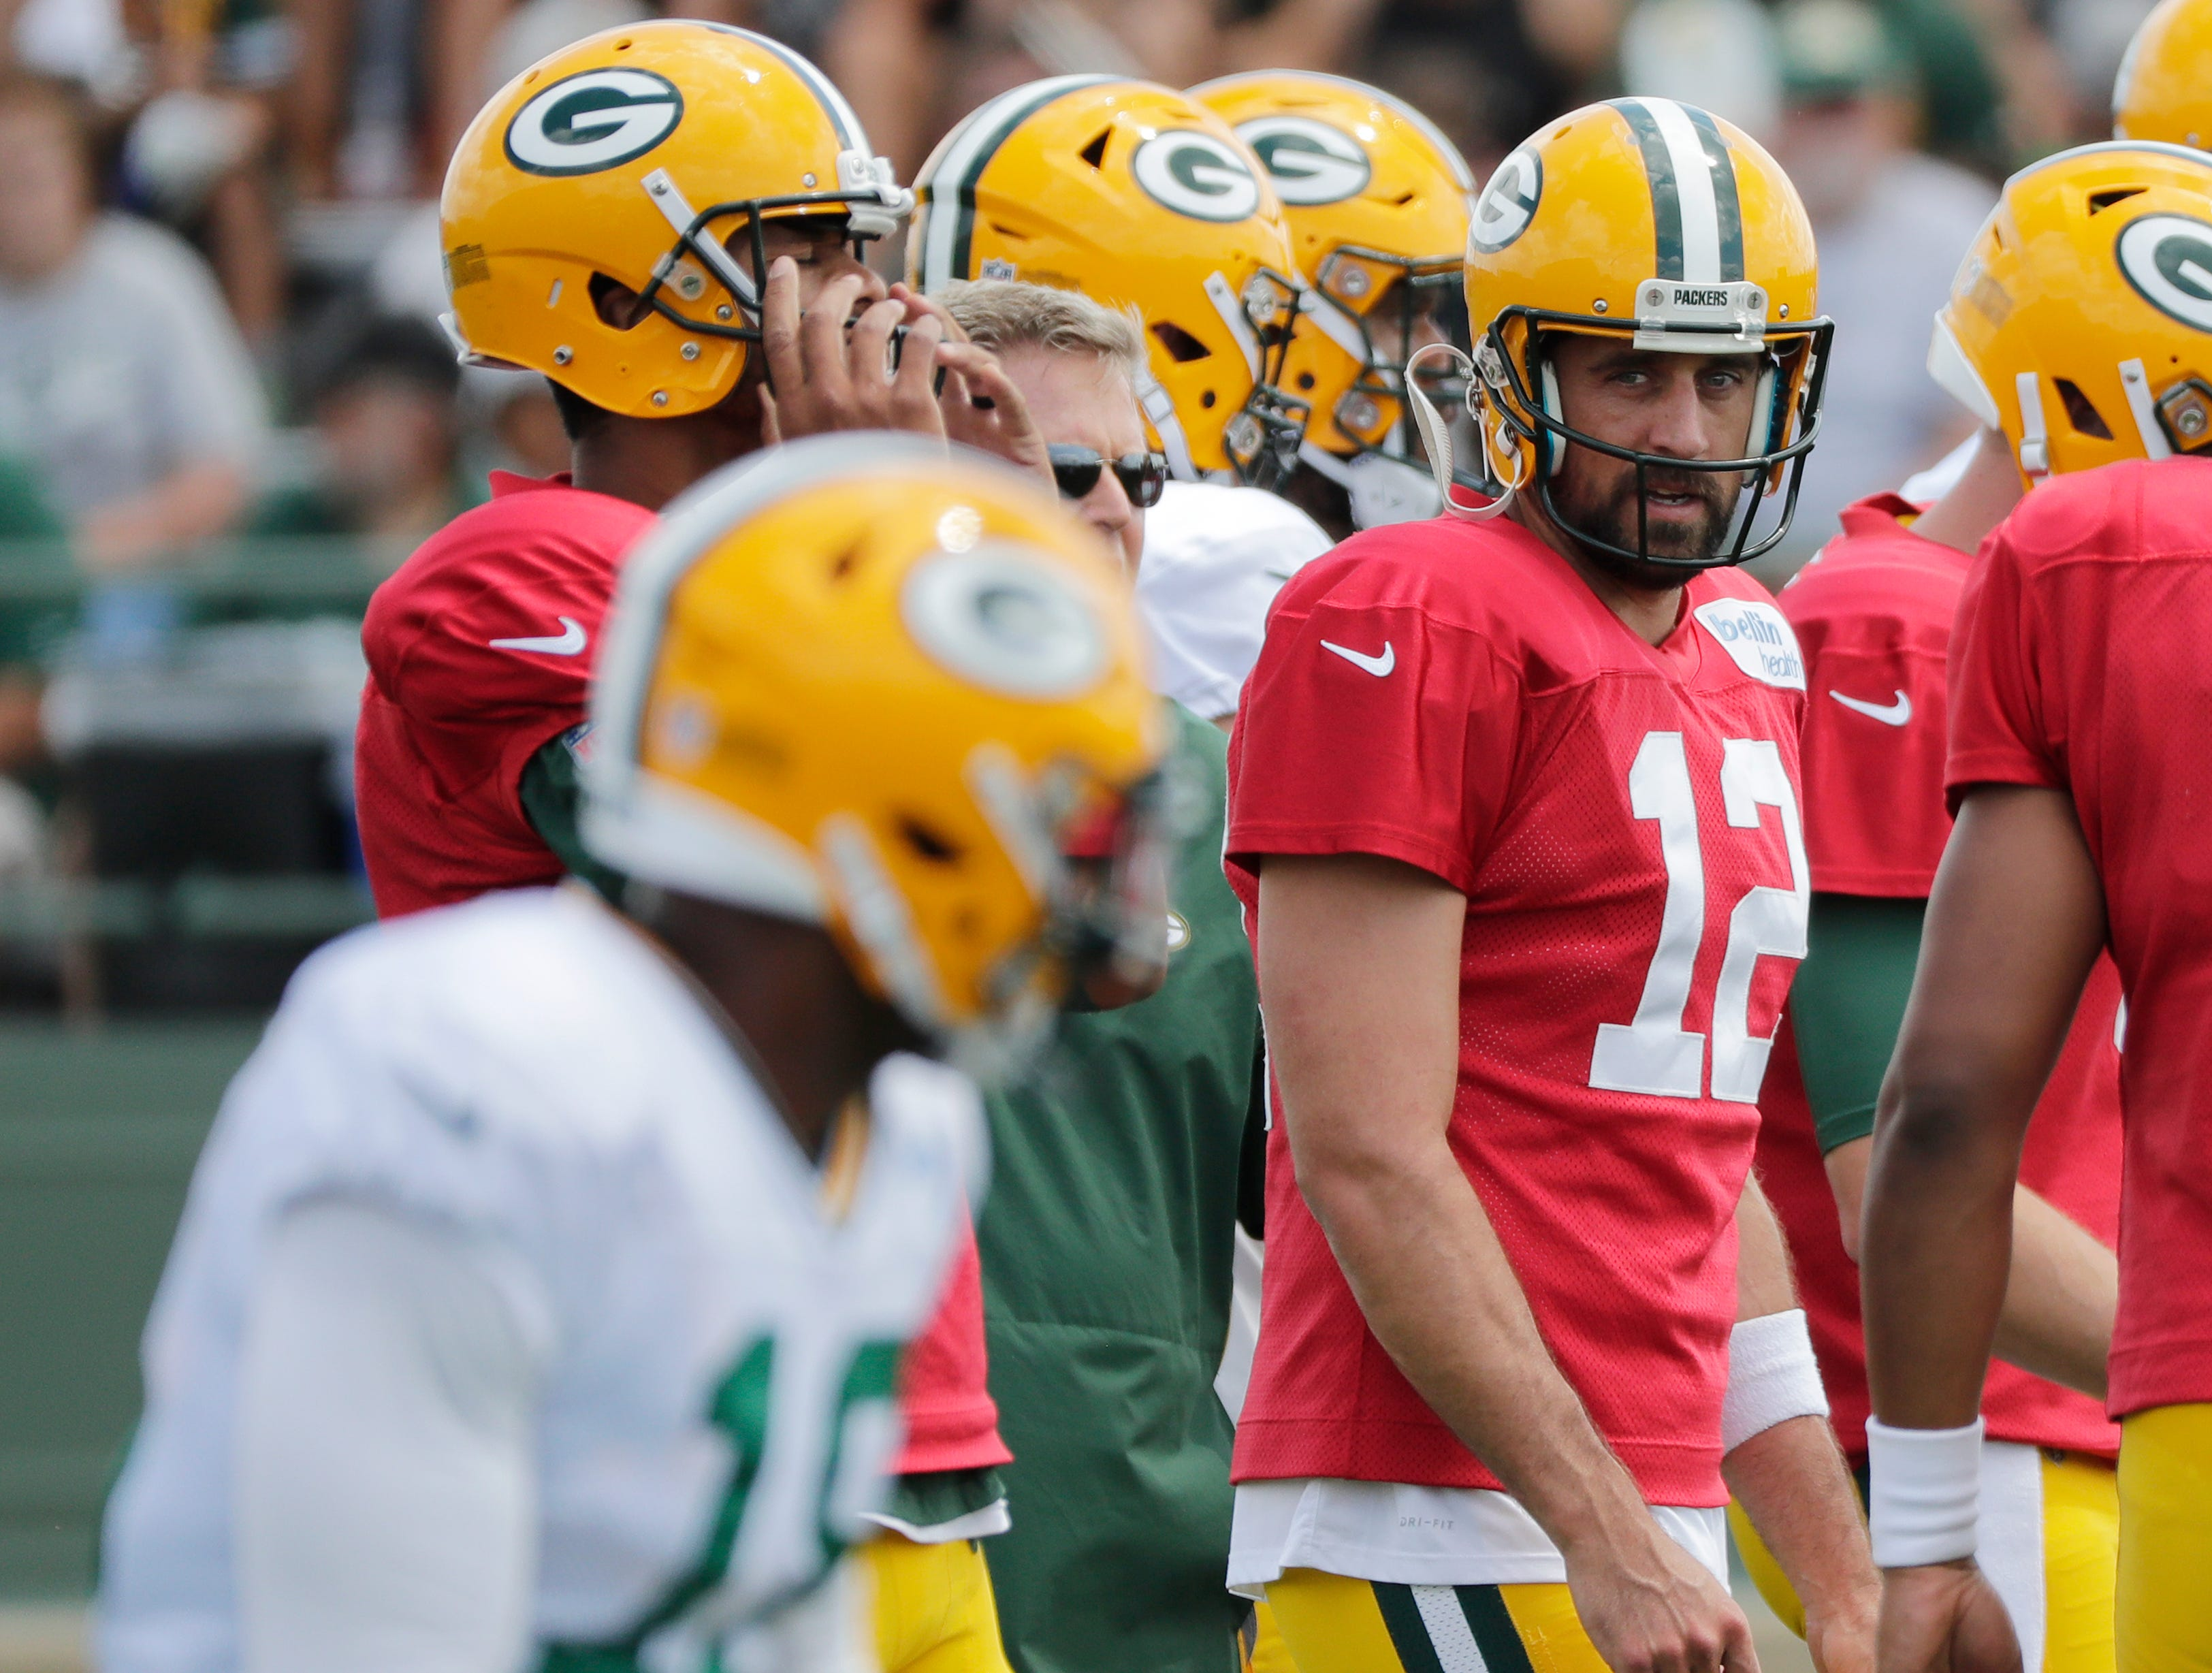 Green Bay Packers quarterback Aaron Rodgers (12) during training camp practice at Ray Nitschke Field on Friday, August 3, 2018 in Ashwaubenon, Wis. 